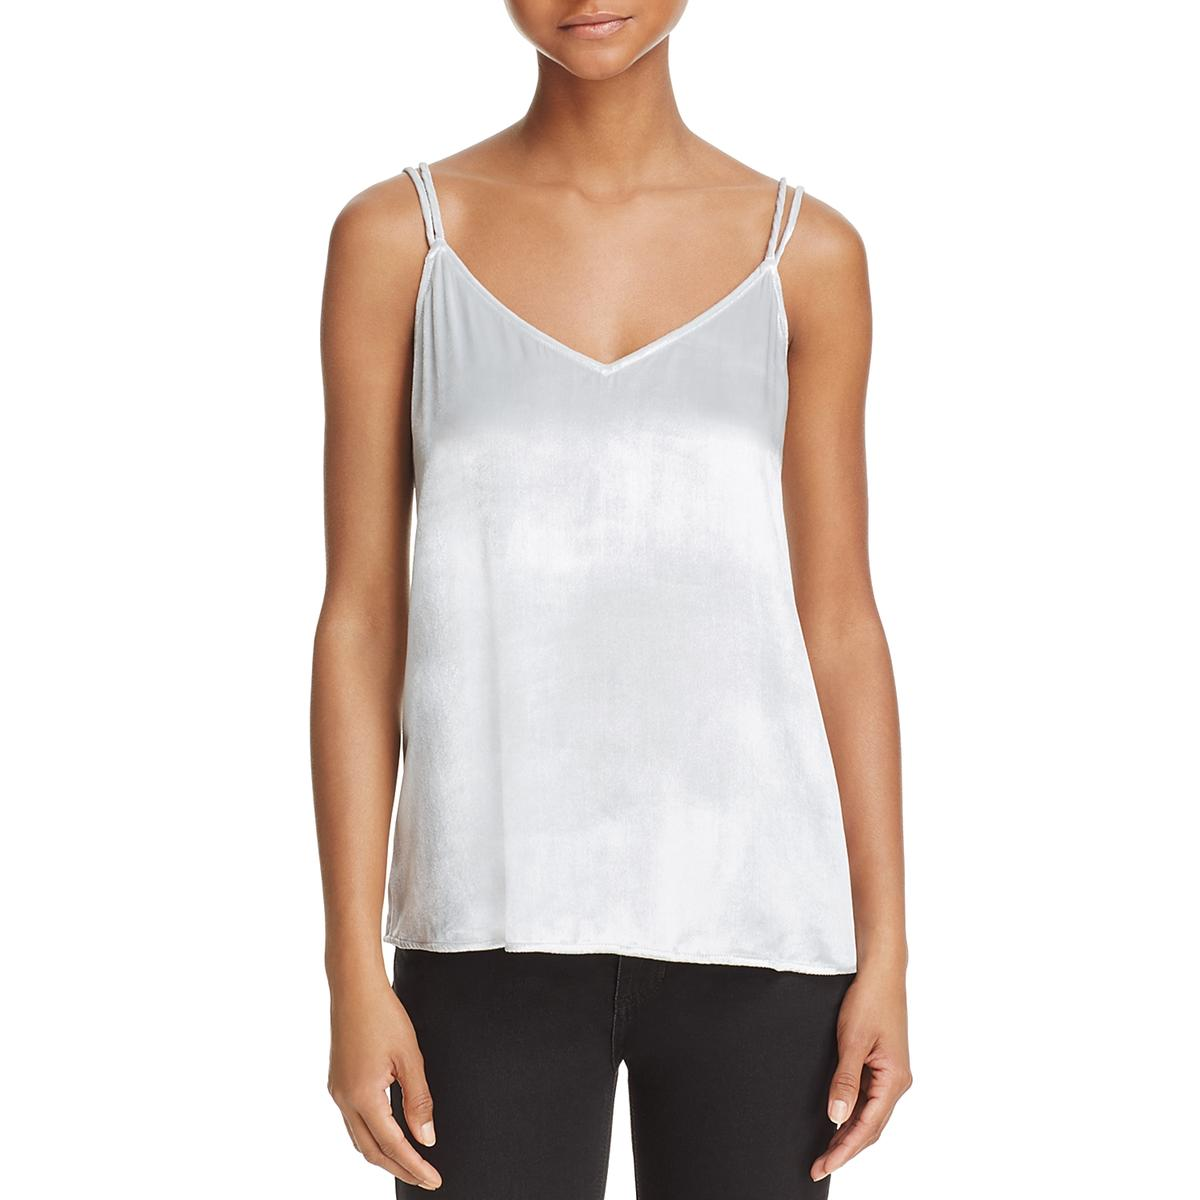 4223b23714e38 Details about Equipment Femme Womens Layla Silk Velvet Camisole Top Cami  BHFO 9182